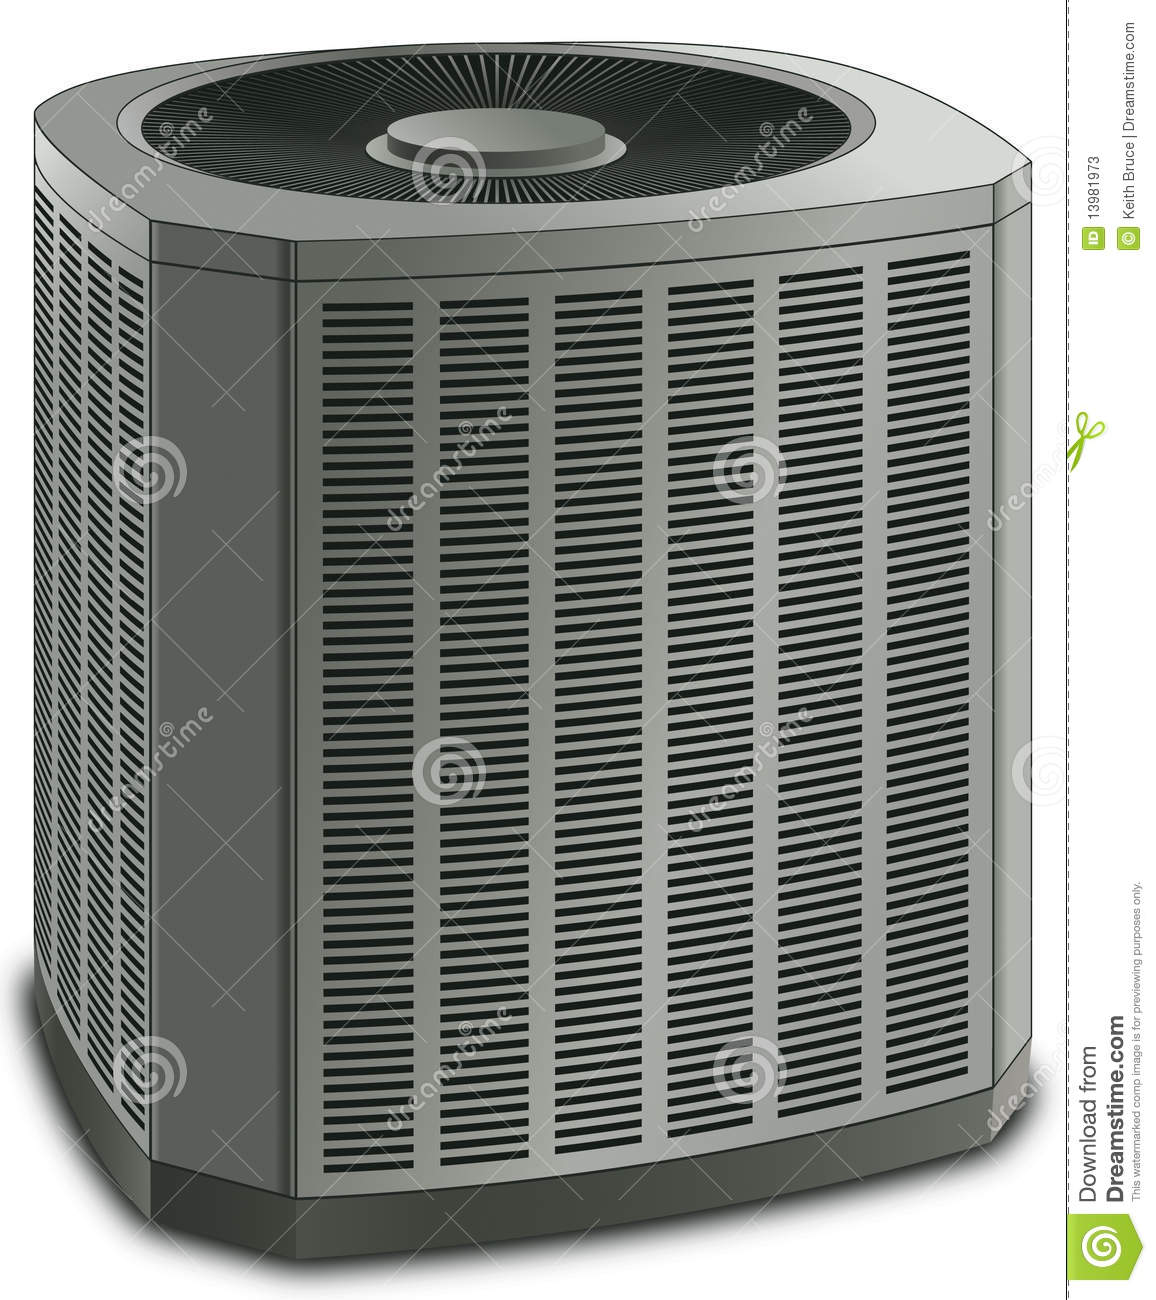 Central Air Conditioner Clipart Air conditioner conditioning #84A625